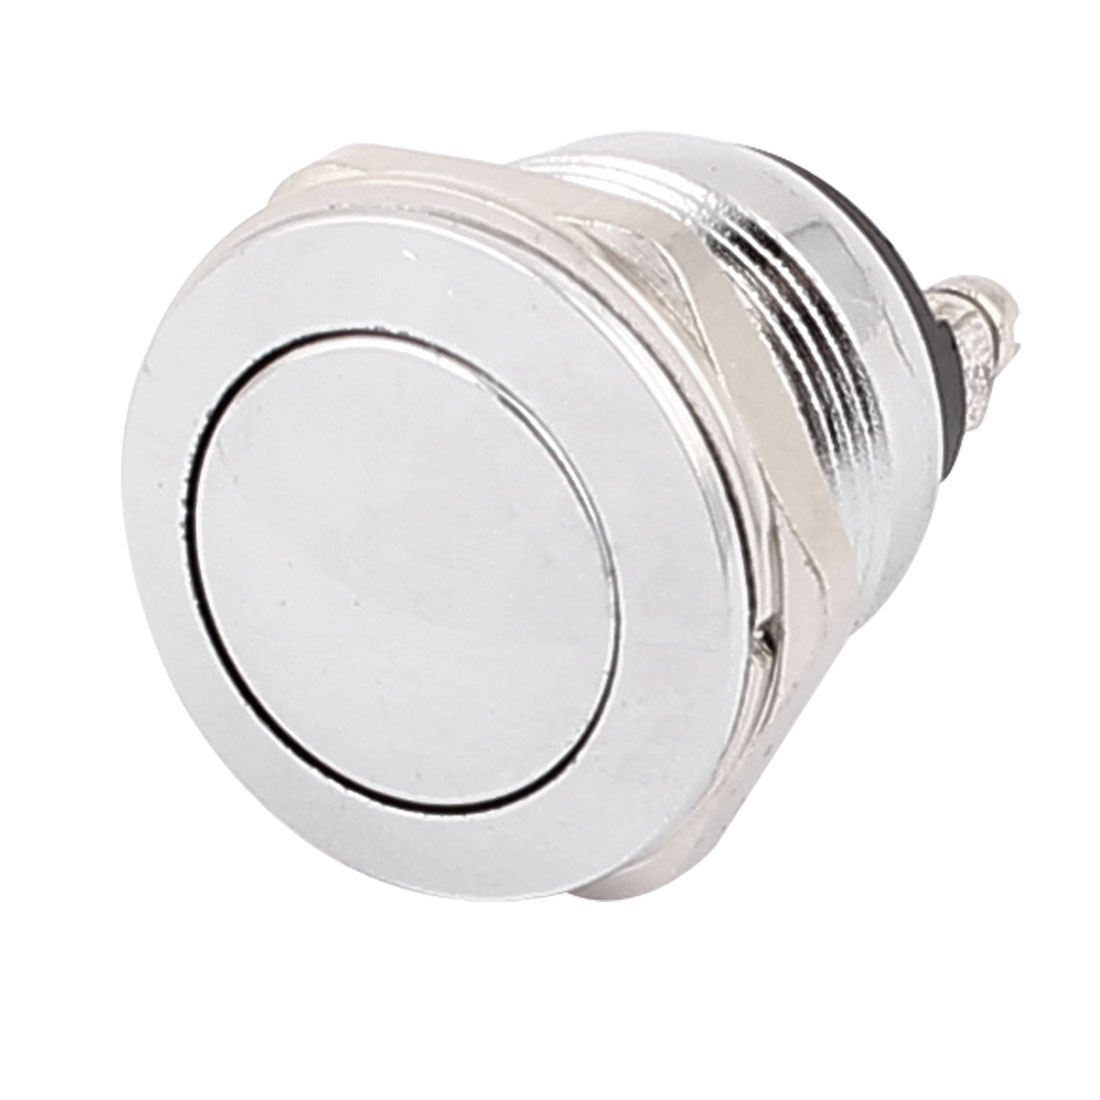 DC 36V 2A 18.5mm Thread Panel Mount SPST Momentary Metal Push Button Switch